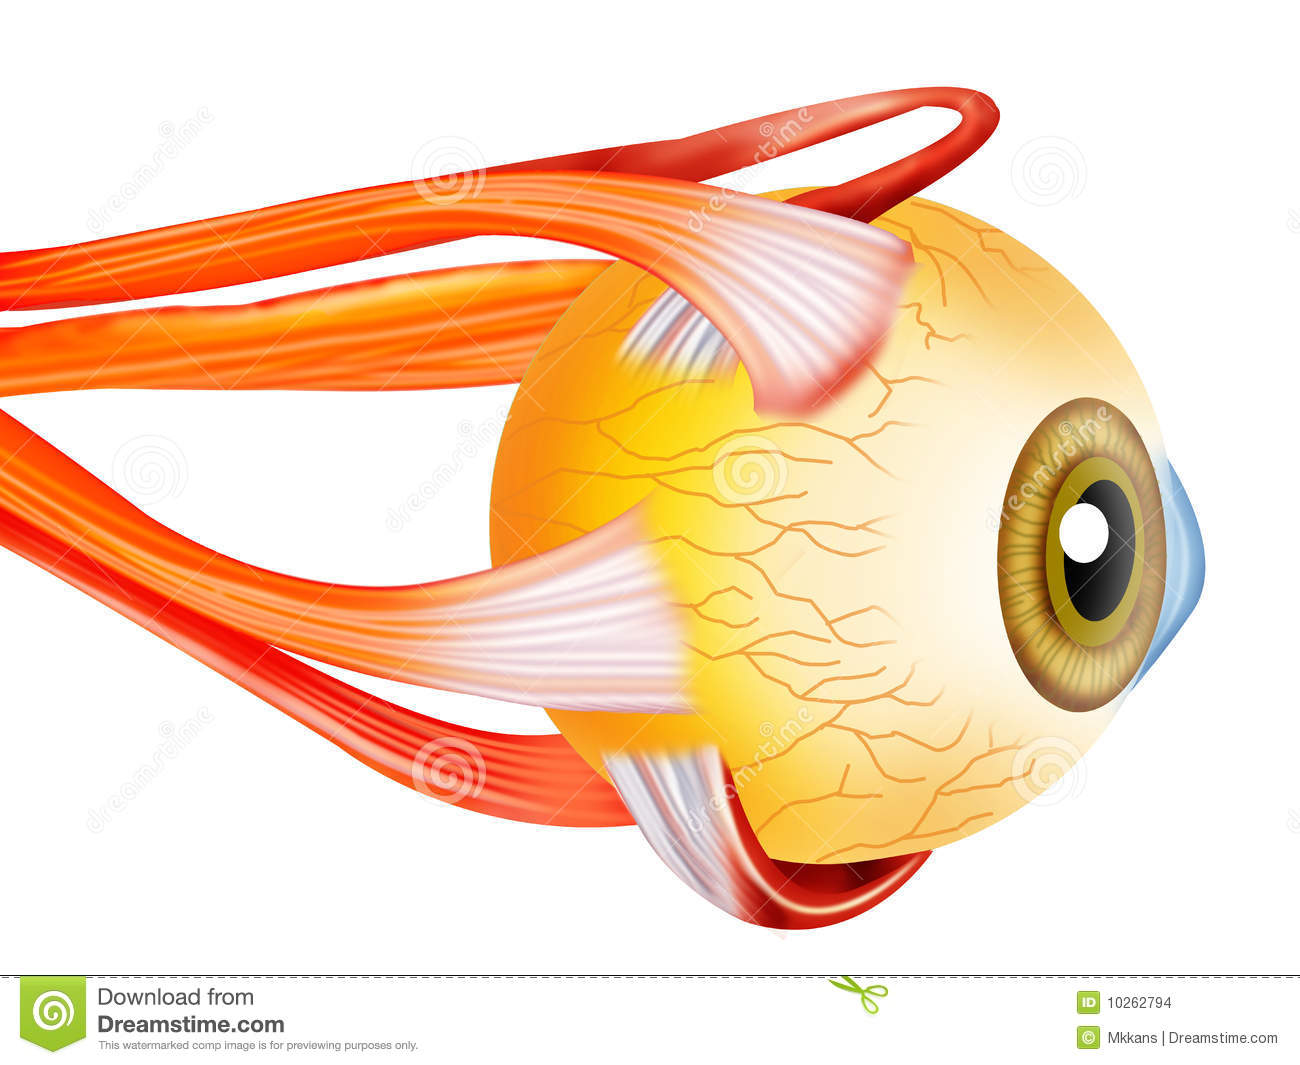 Eye structure stock illustration. Illustration of refract - 10262794